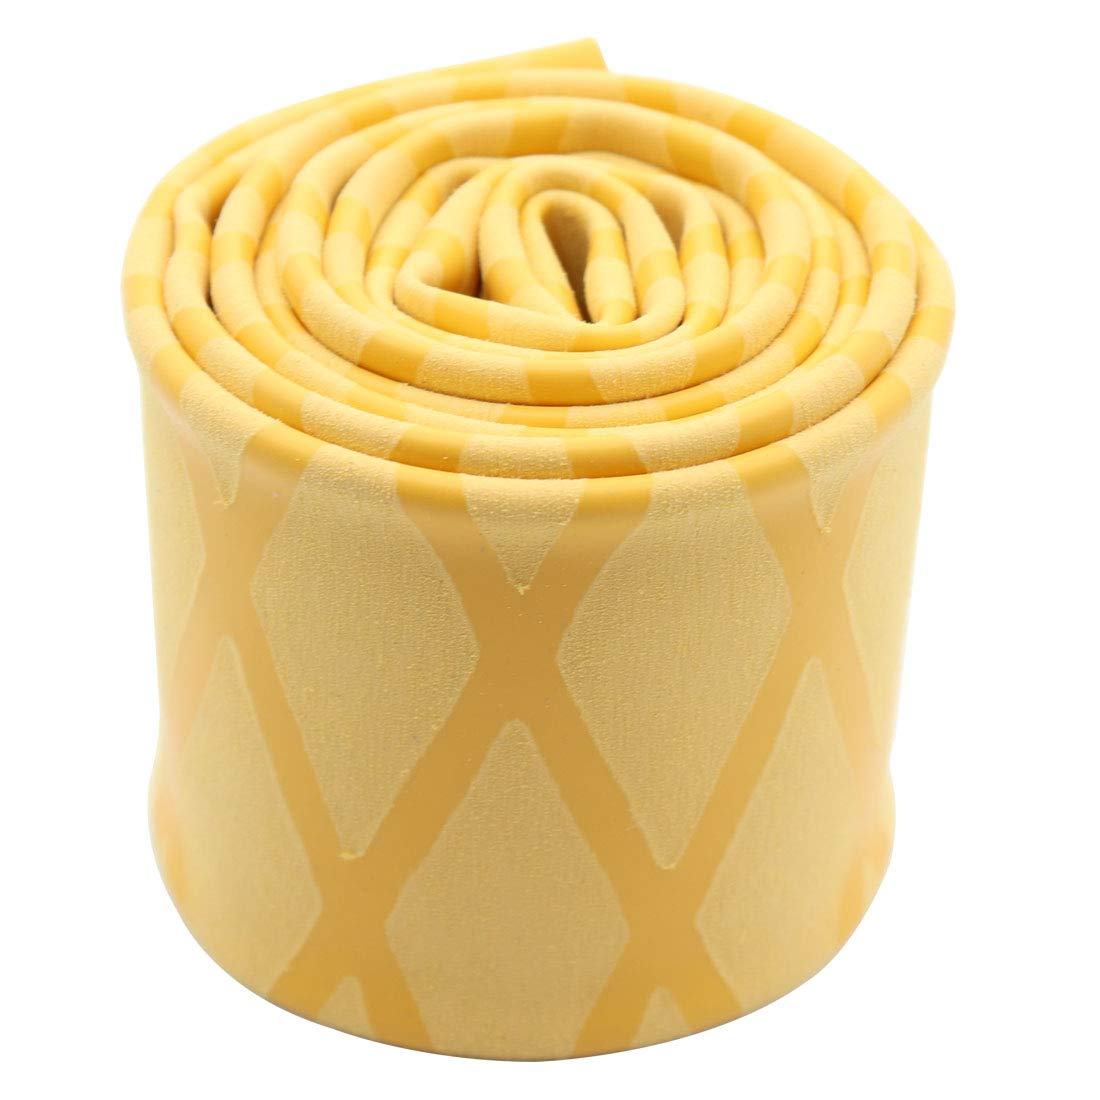 Lime2018 Heat Shrink Sleeve Wrap Tubing X-Tube Wrap Tubing for Fishing Rod Handle Cork with Non Slip Waterproof and Insulation 1 Meter. Diameter: 45 mm, Yellow (Dia 45mm Yellow)